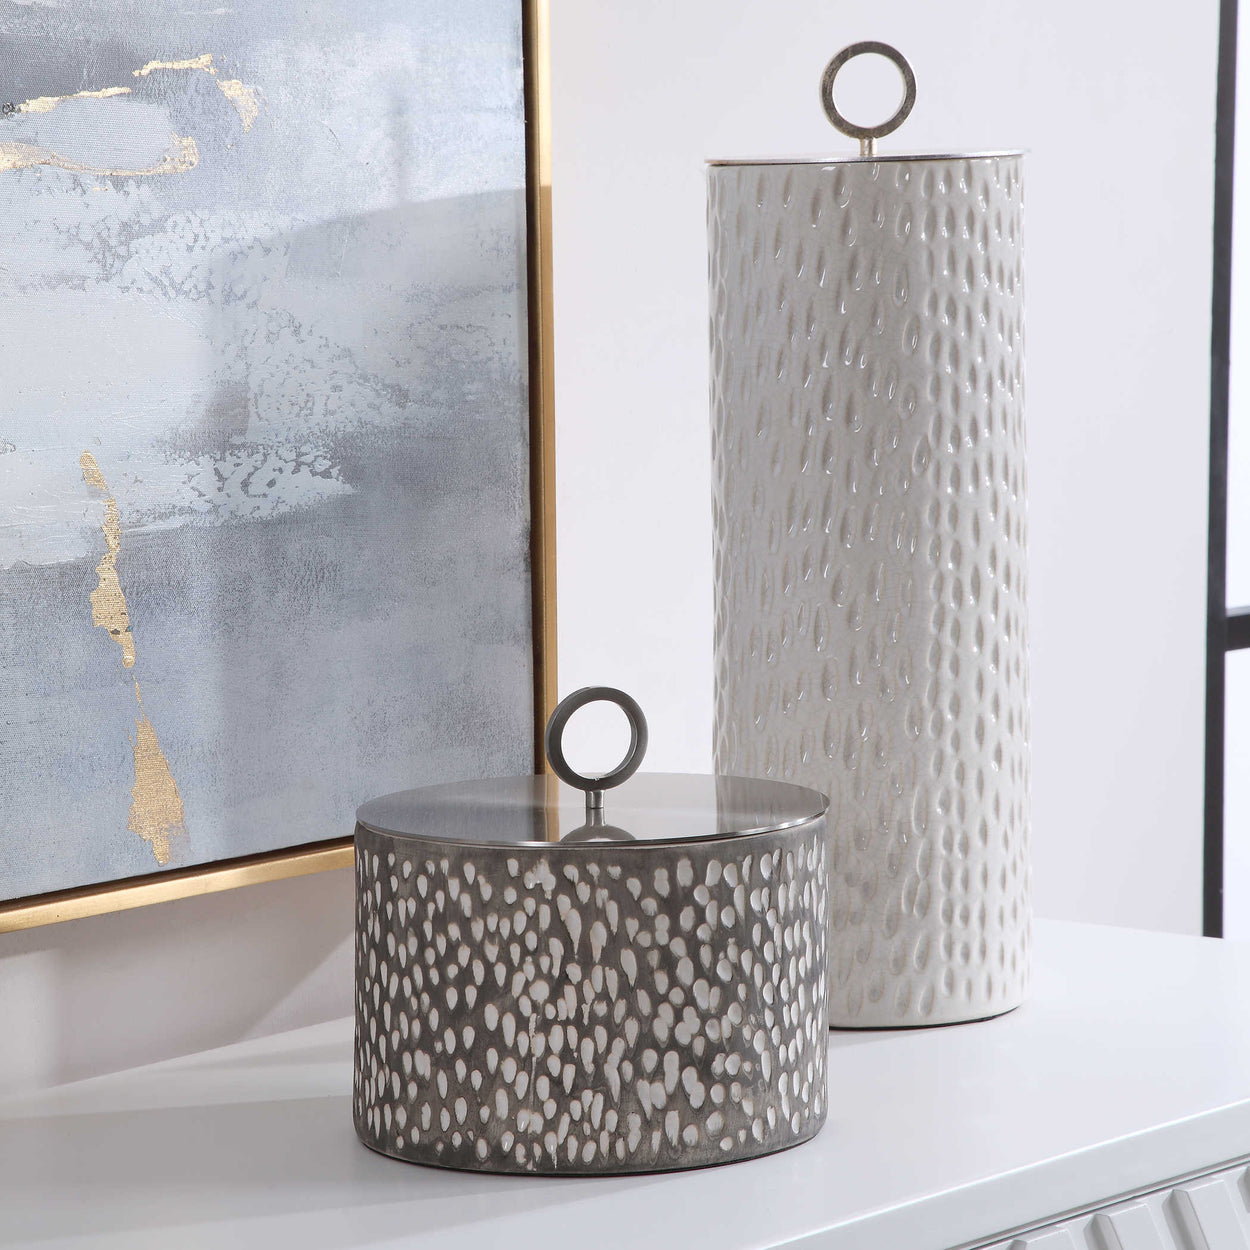 Ceramic containers feature carved detailing and are finished in off-white and smoke gray crackle glazes with respective aged gold and brushed nickel finished lids. Sizes: S-9x9x9, L-6x19x6